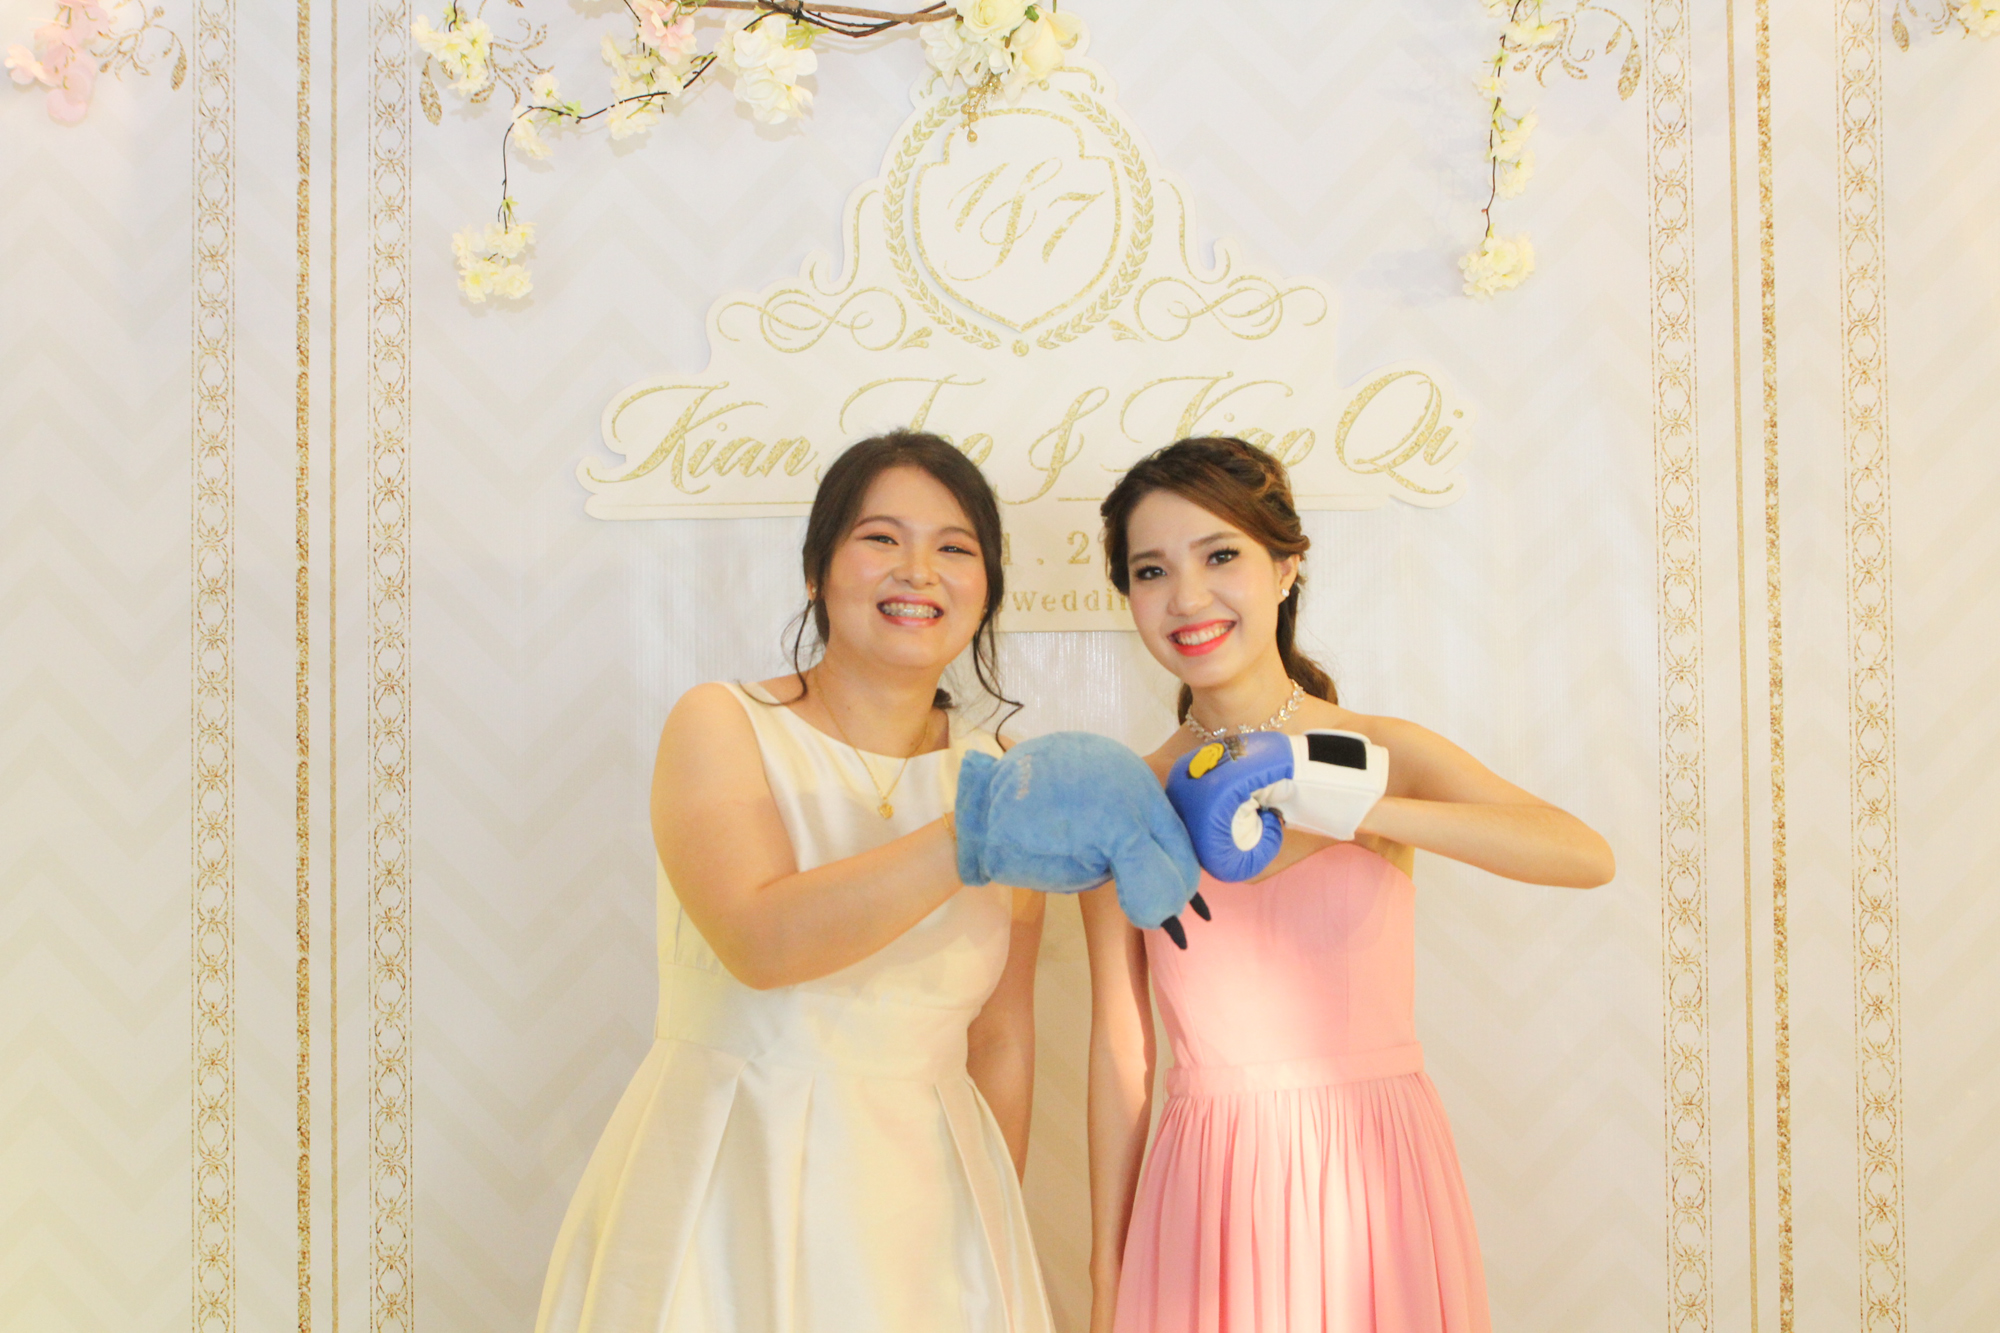 Johor photo booth rental